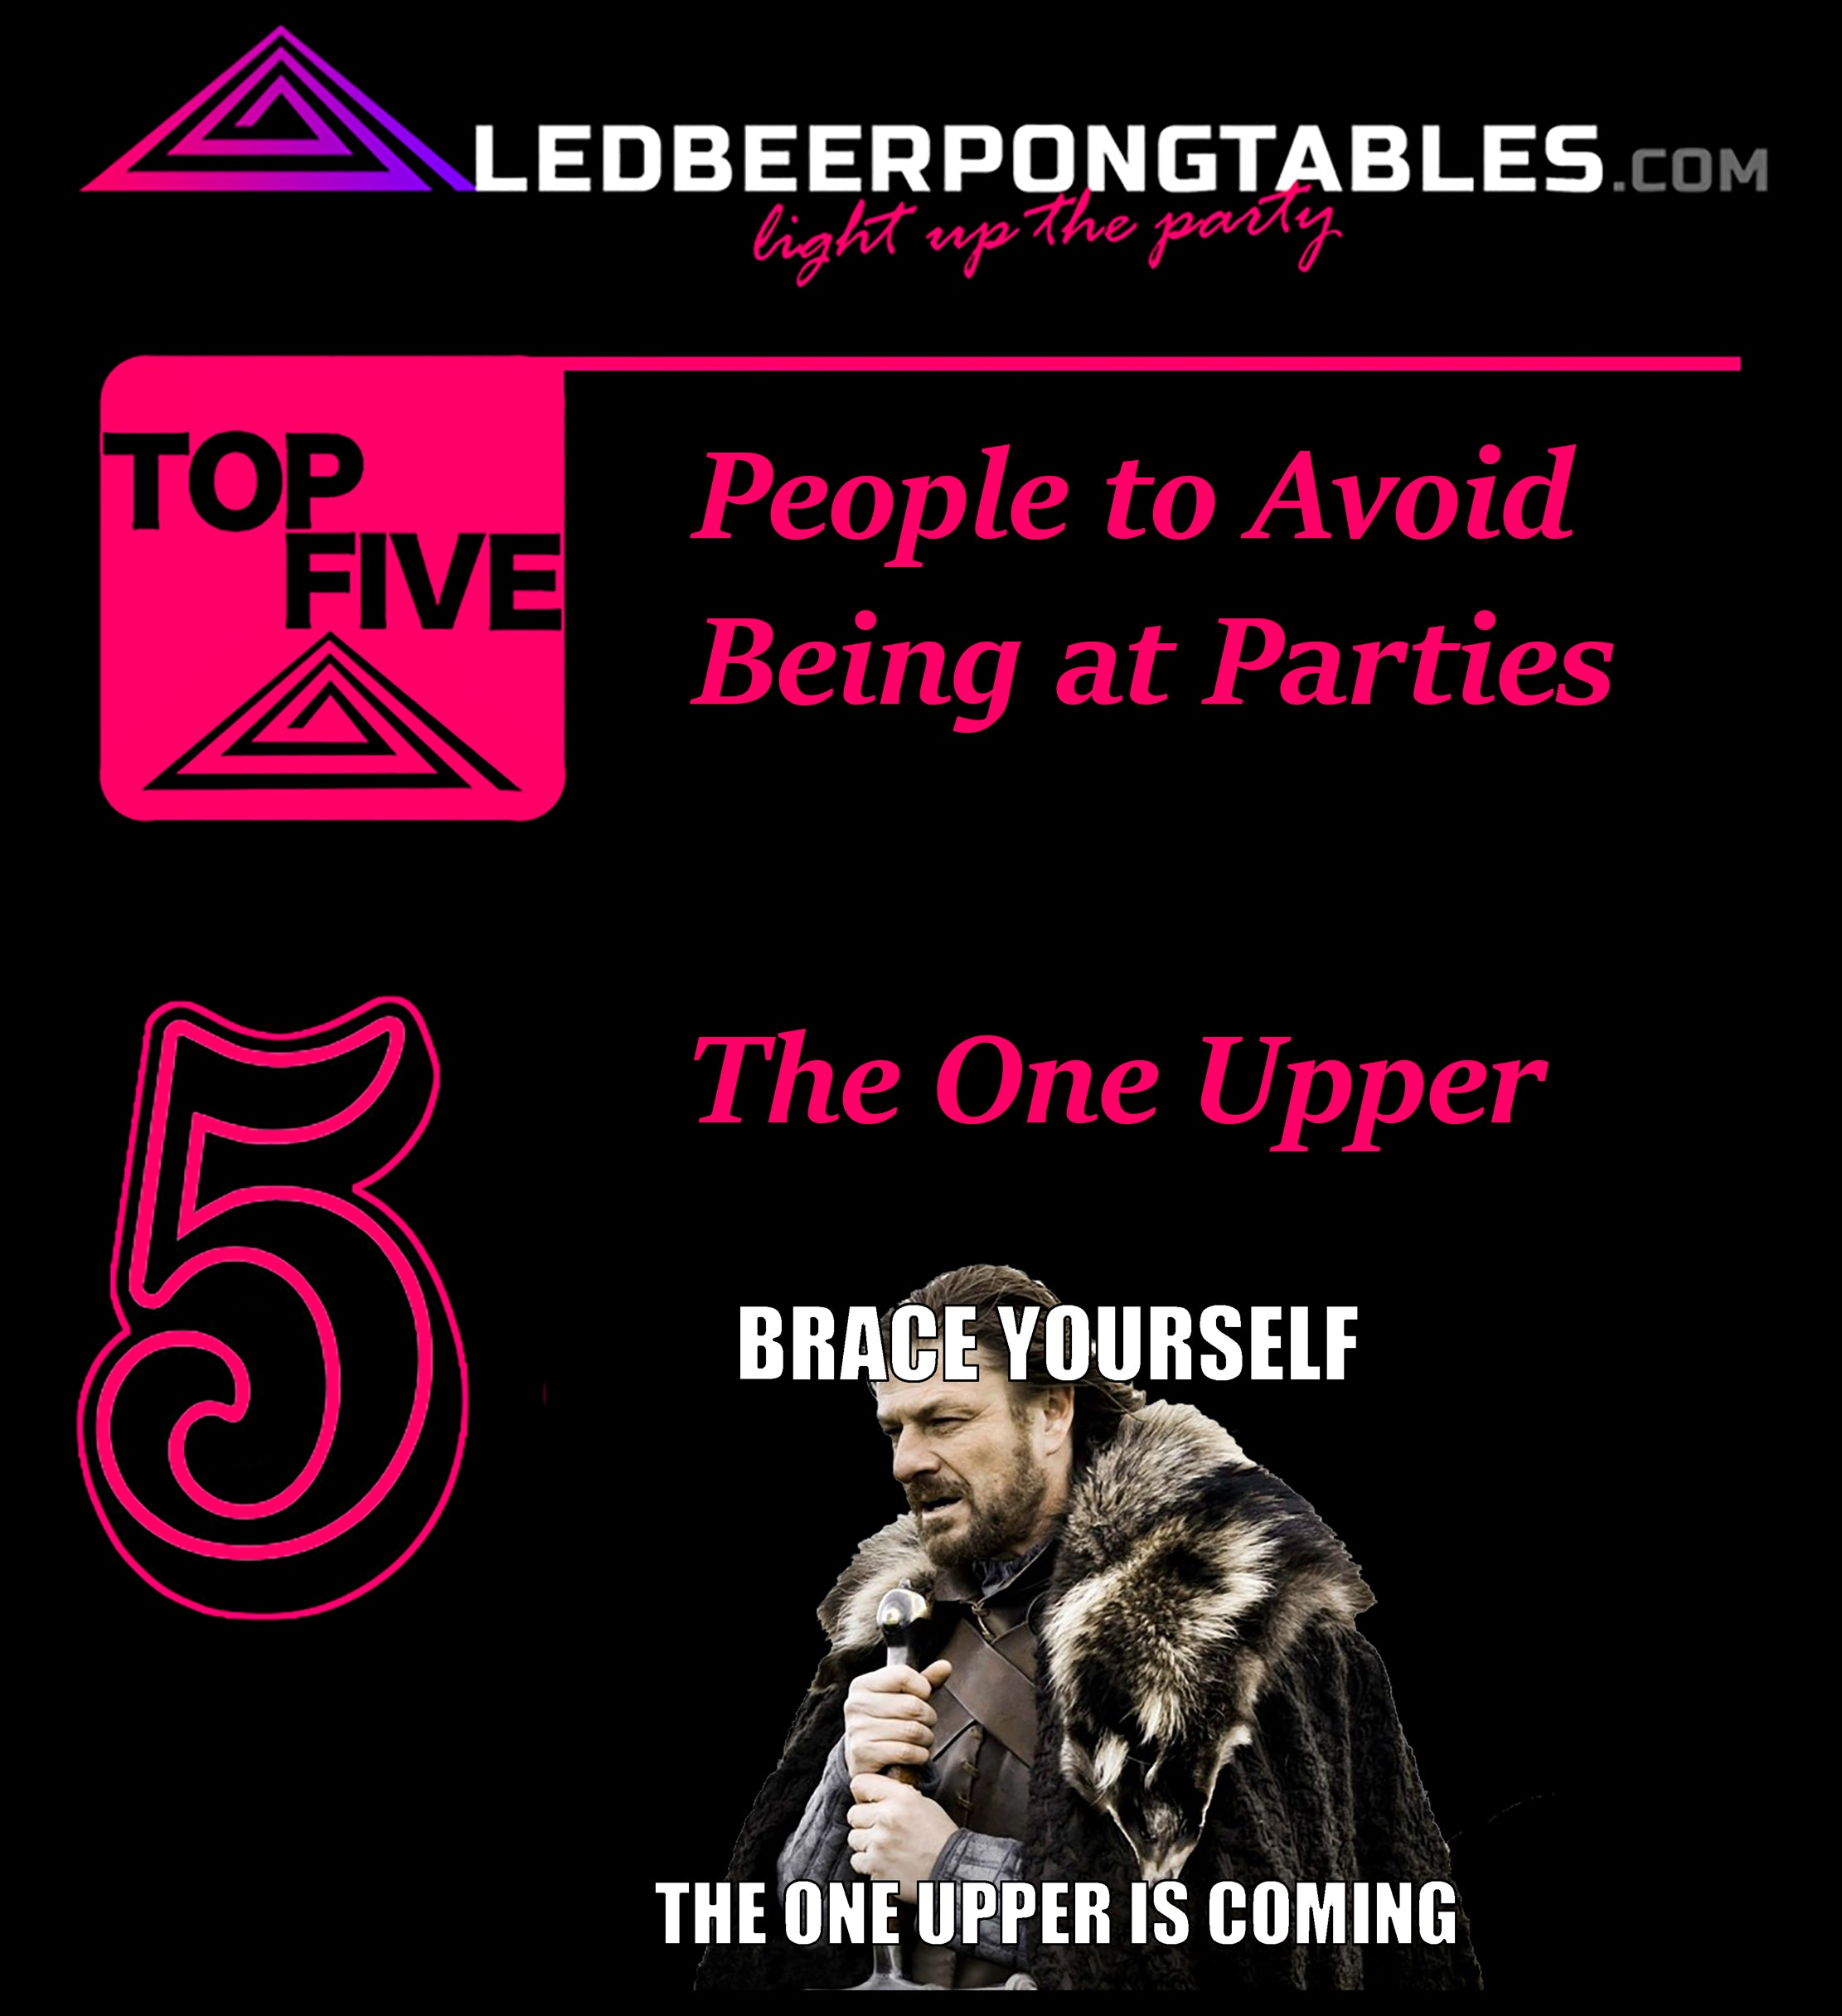 led beer pong tables top 5 people to avoid being at parties